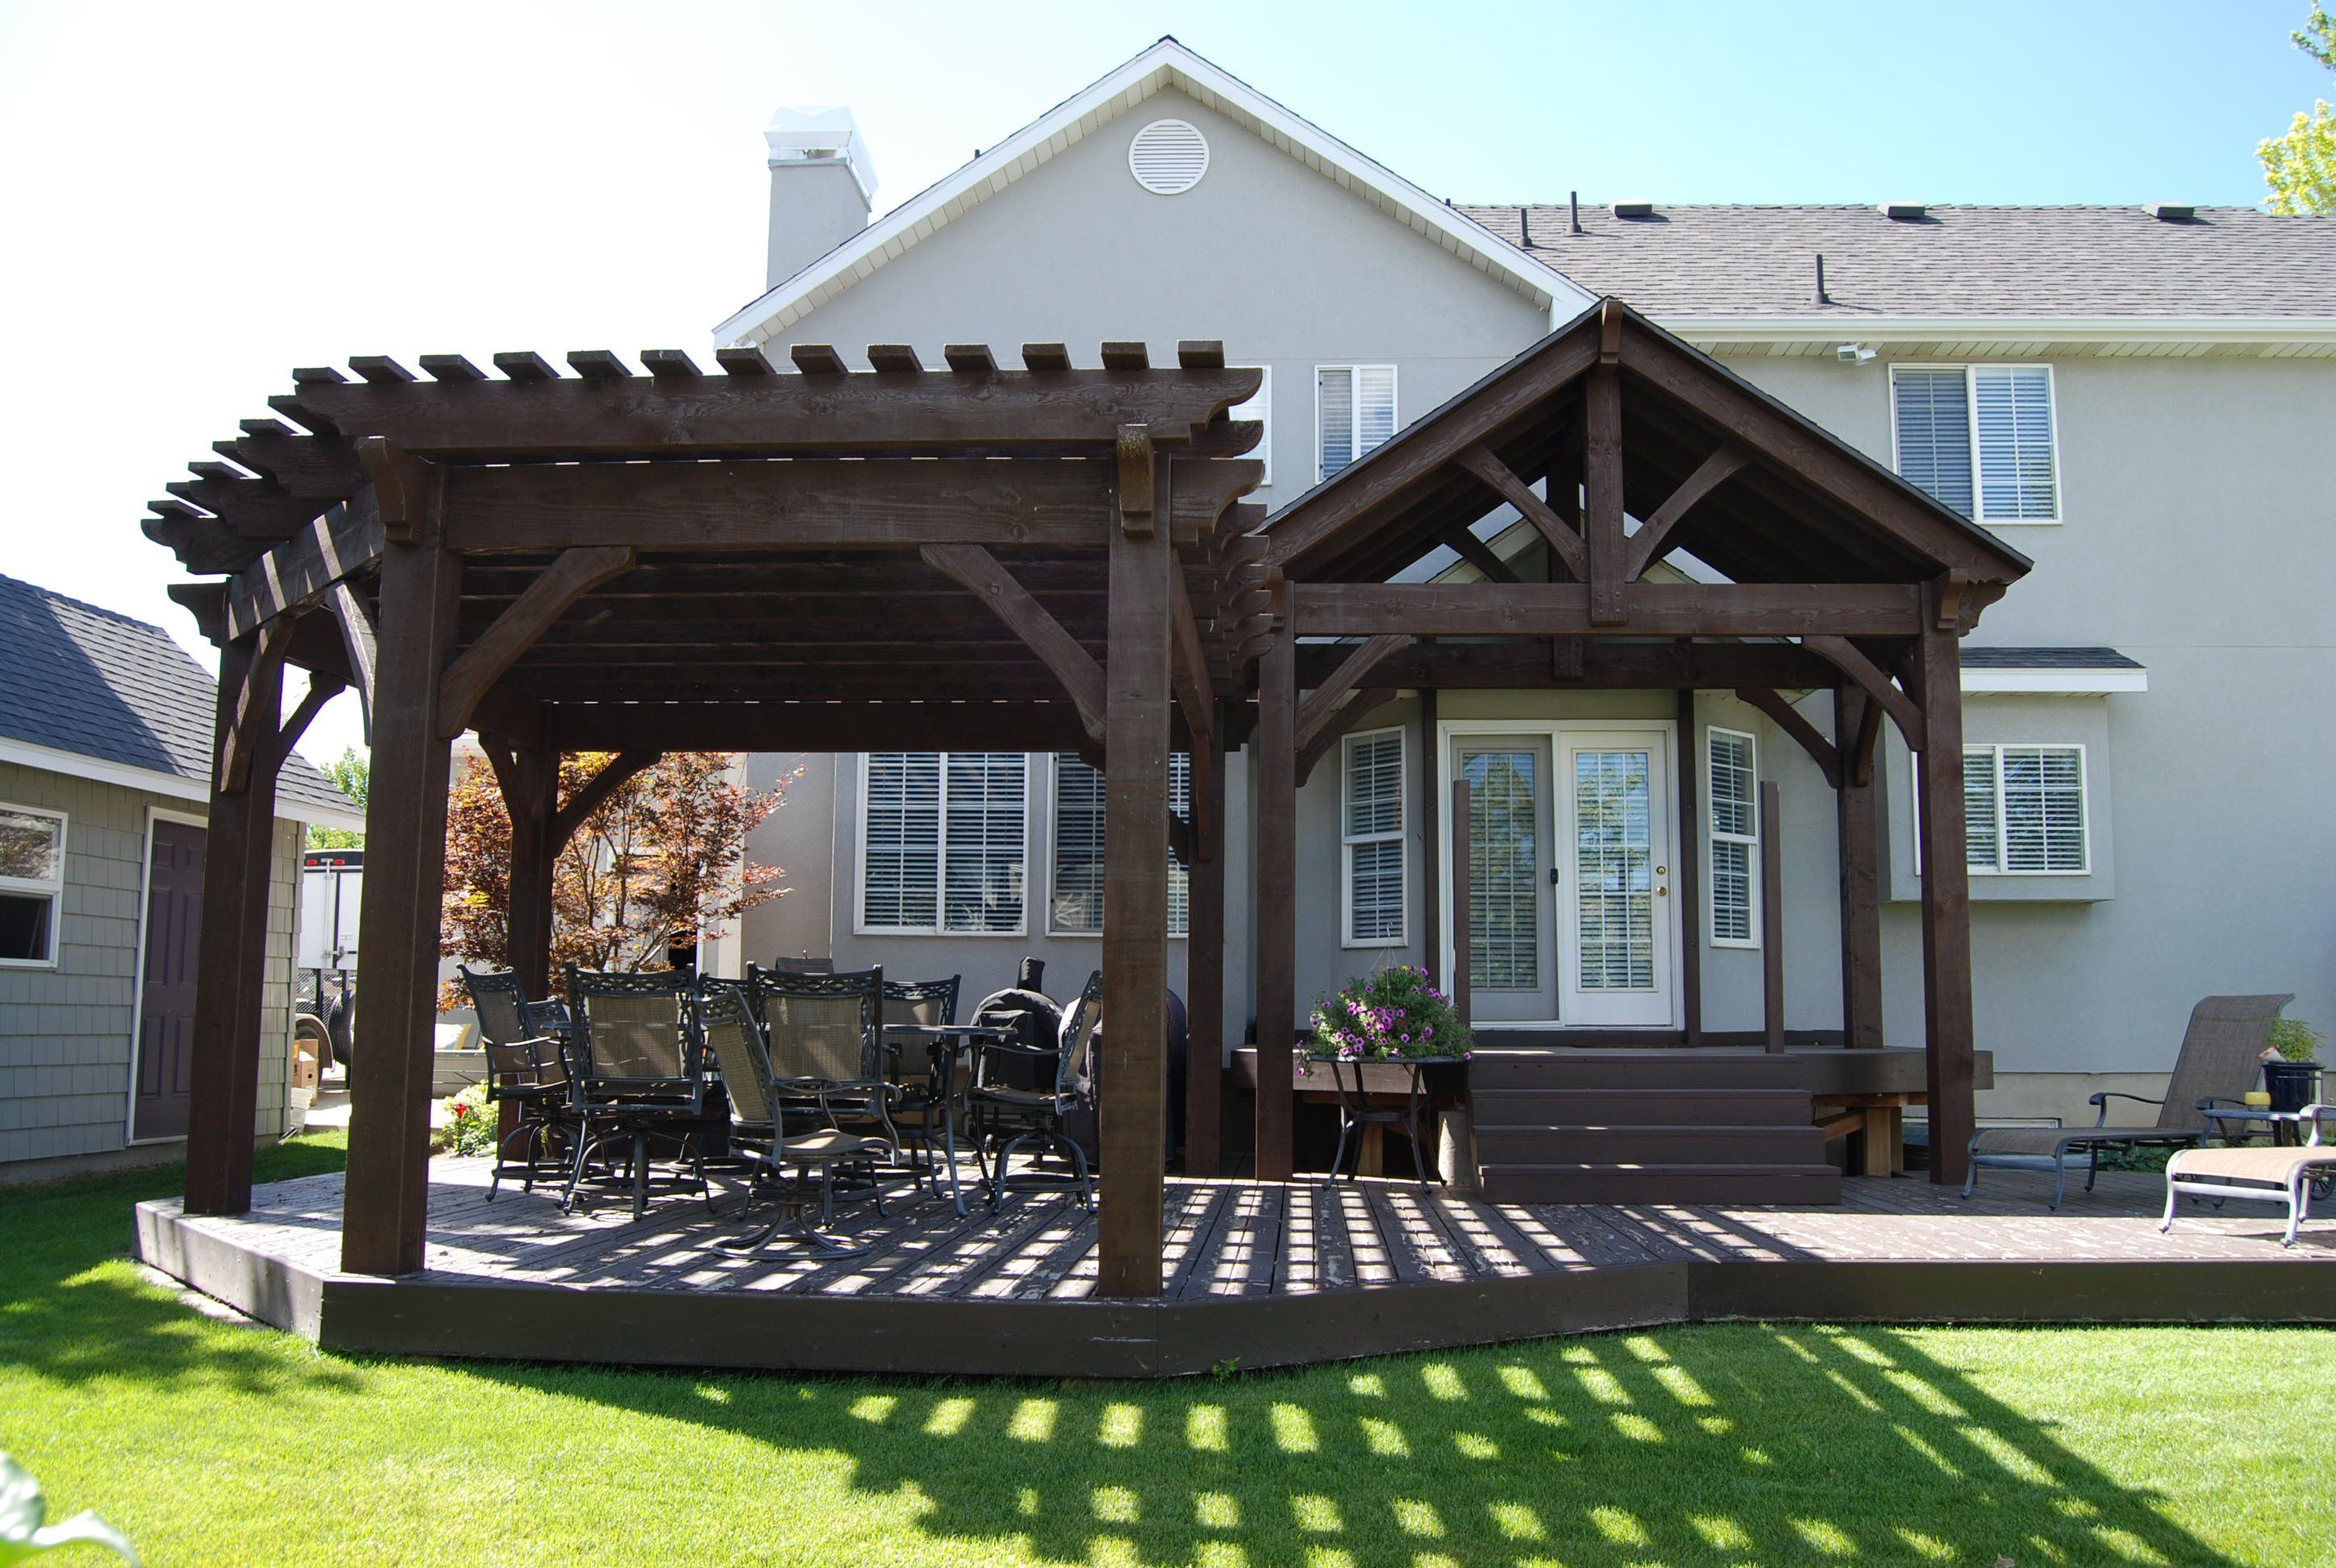 diy timber frame pavilion and pergola kit for a family party yard